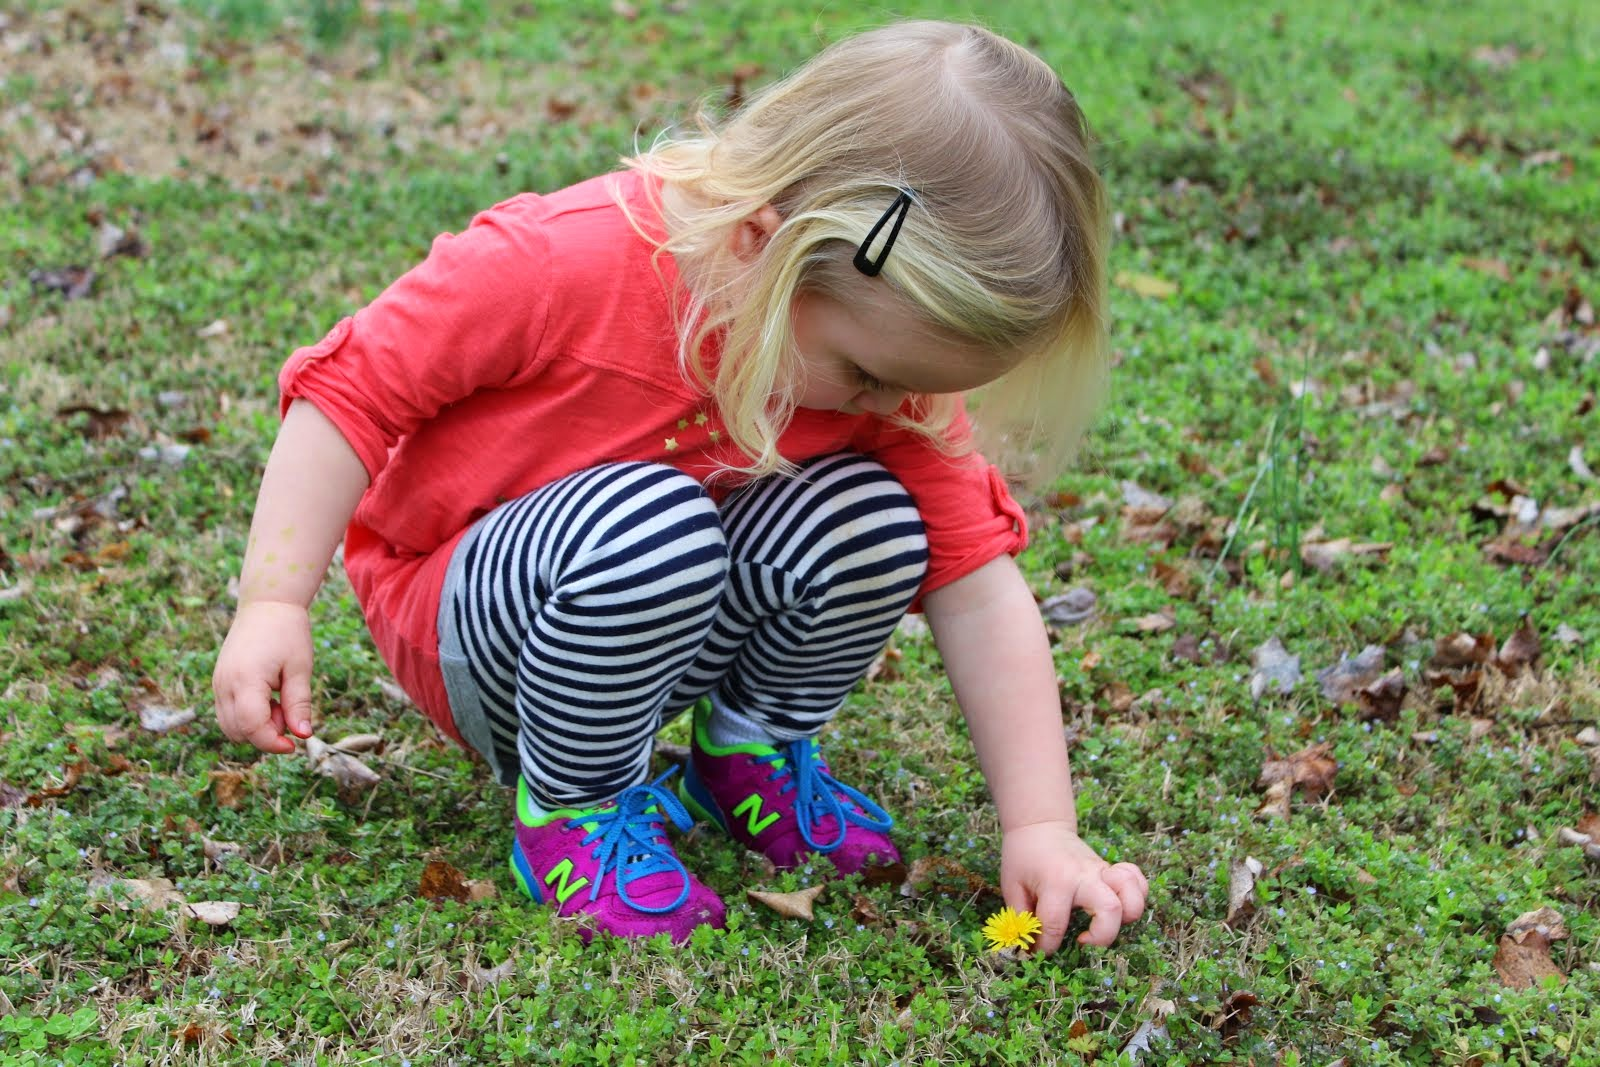 Picking Dandelions!